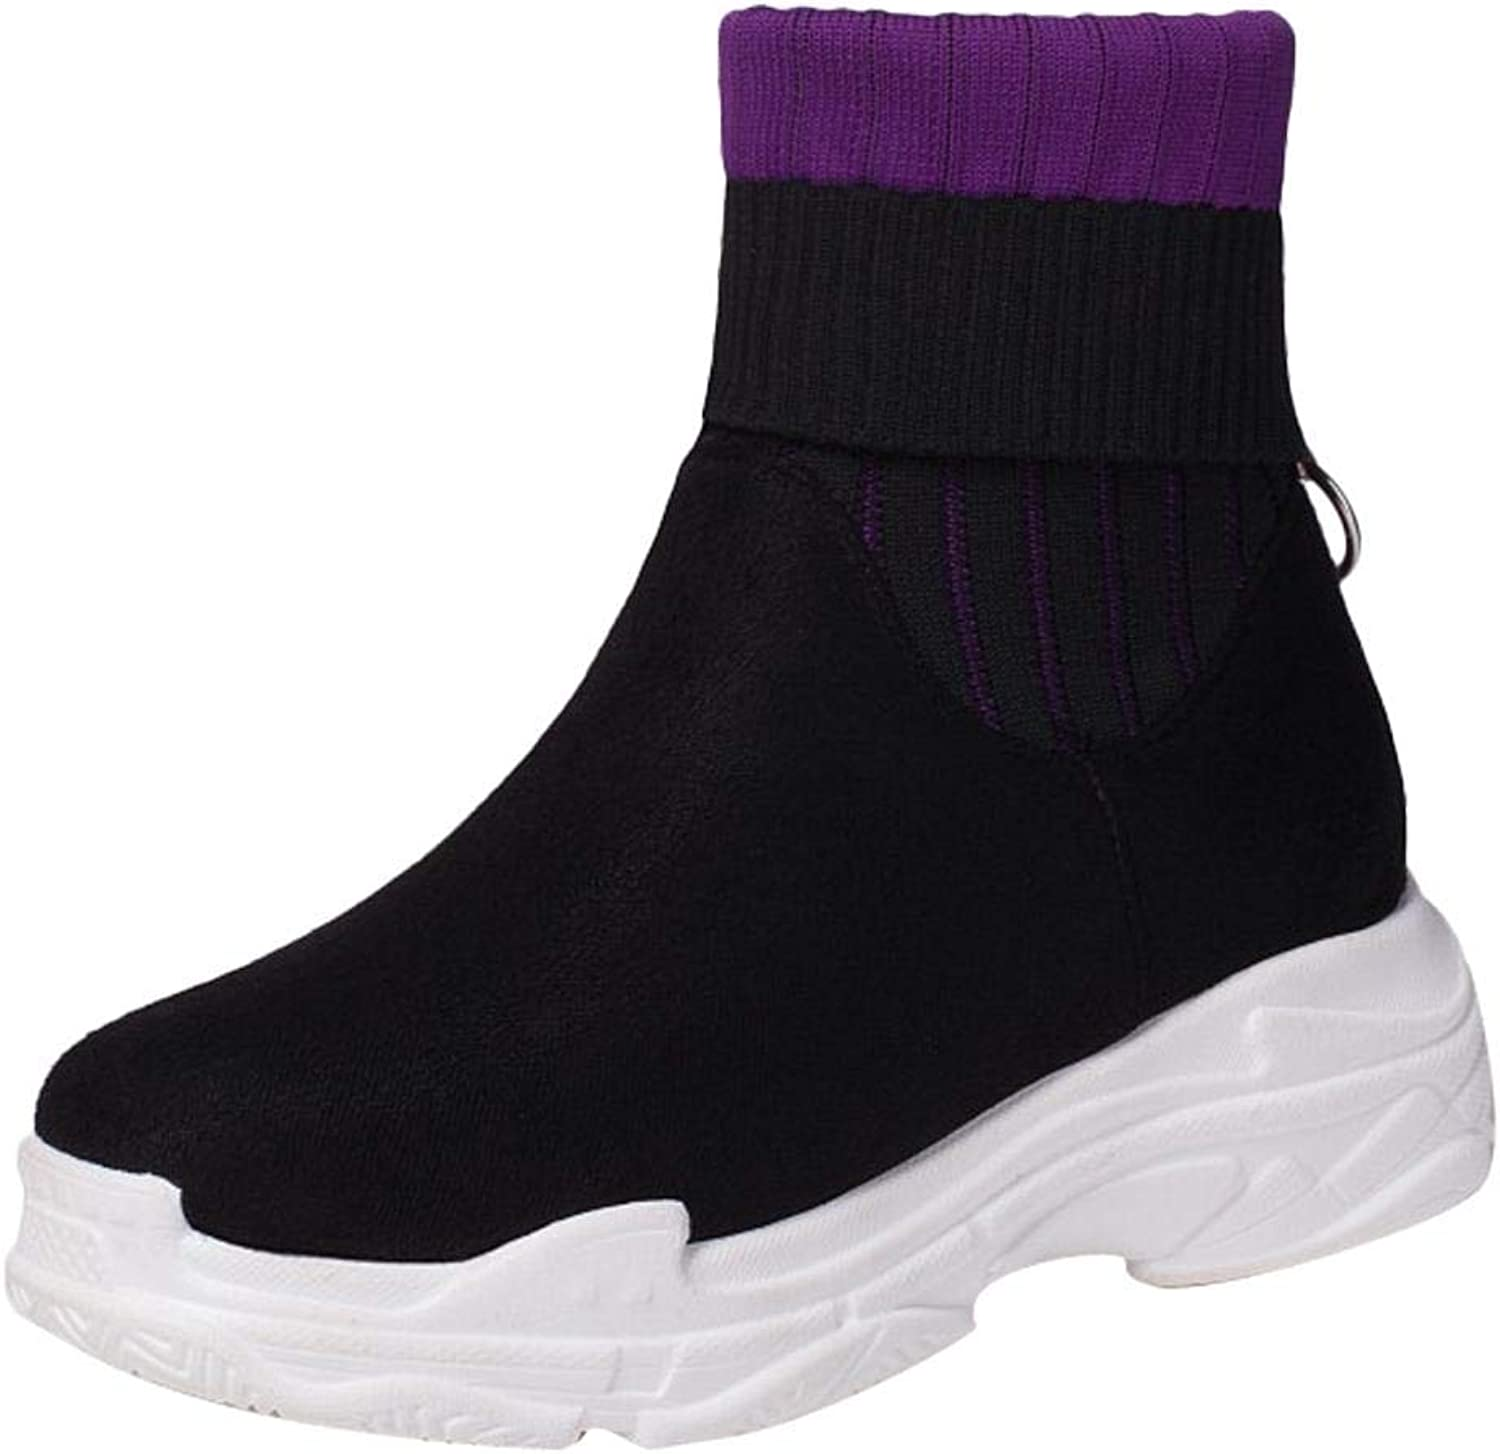 Gcanwea Women's Platform High Top Boots Shockproof Comfortable Warm Girls Flexibility Simple Casual Breathable Lightweight Round Toe Purple 5.5 M US Boots